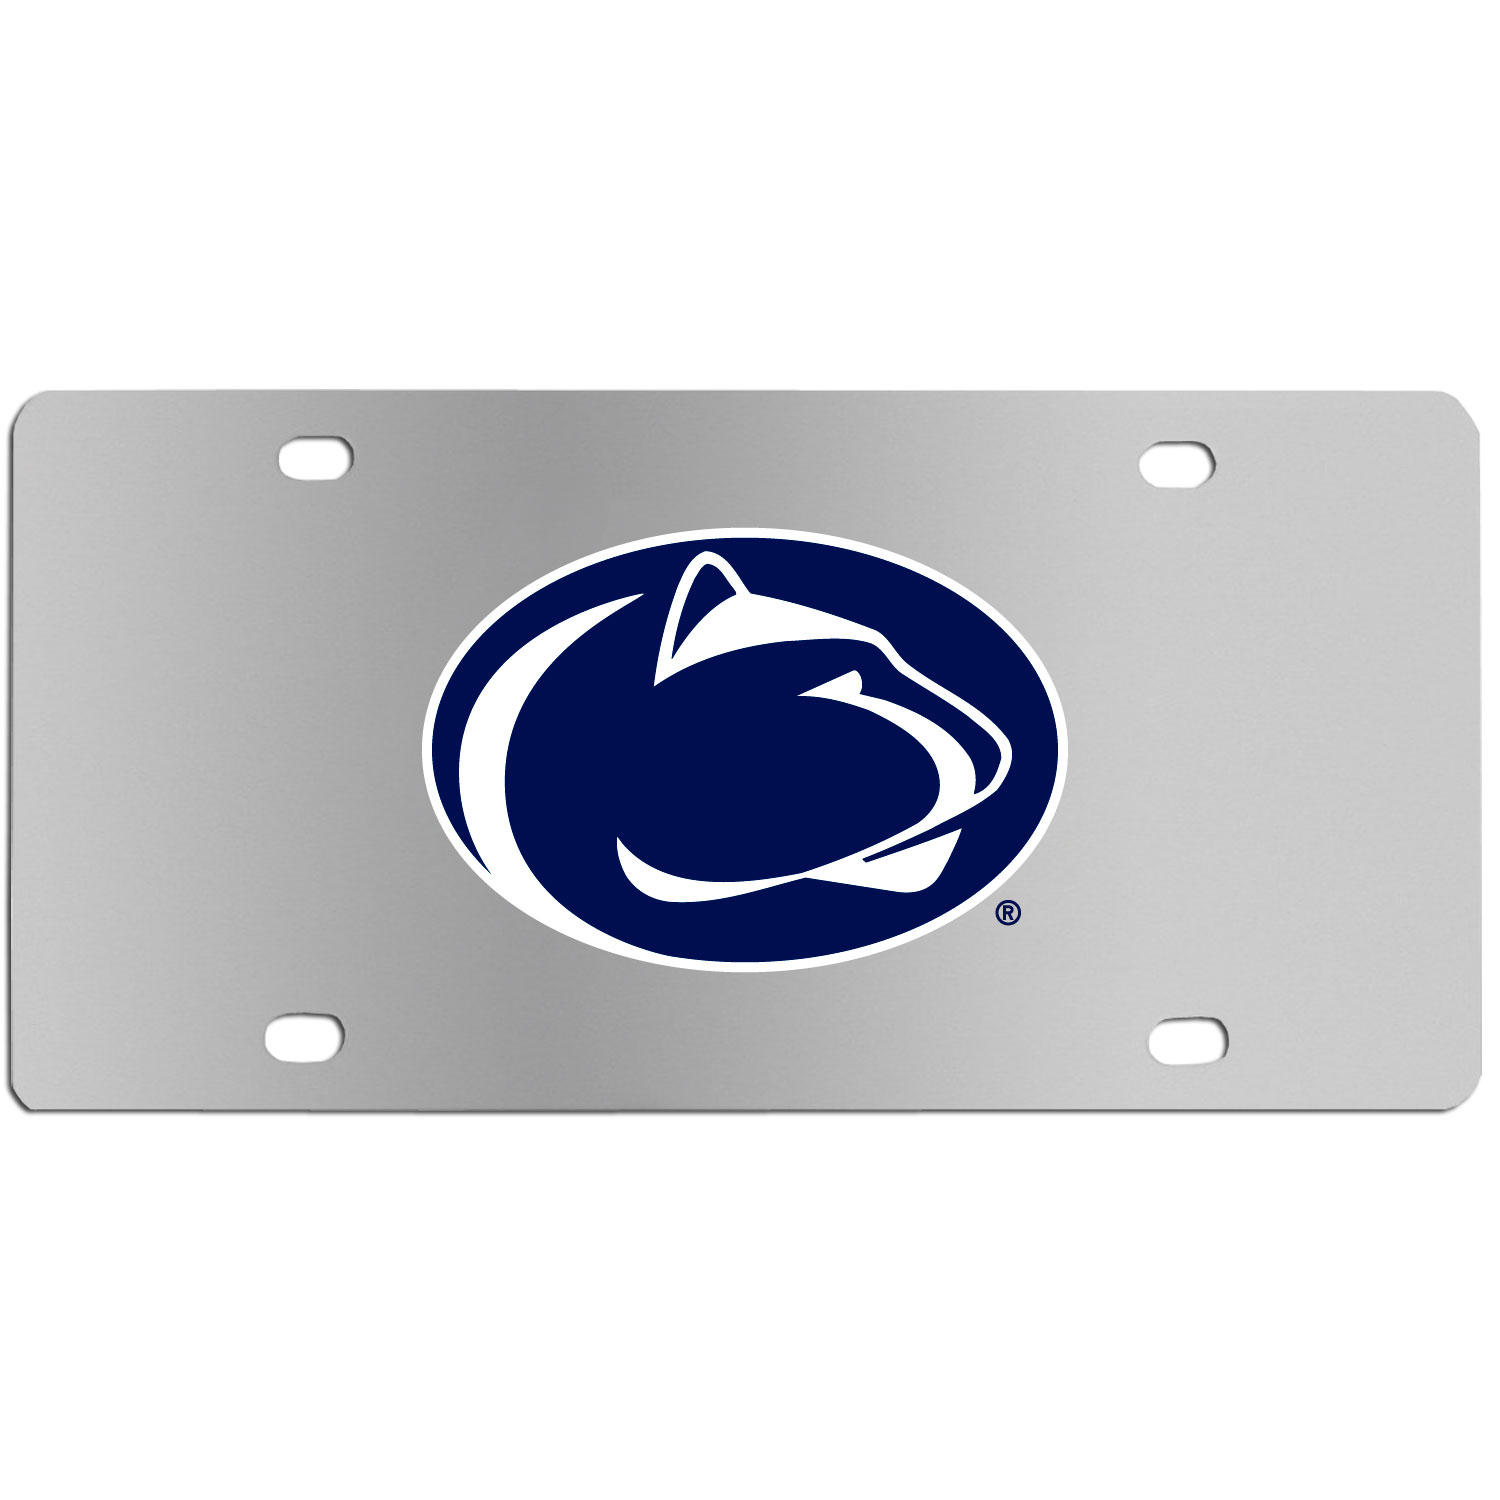 Penn St. Nittany Lions Steel License Plate Wall Plaque - This high-quality stainless steel license plate features a detailed team logo on a the polished surface. The attractive plate is perfect for wall mounting in your home or office to become the perfect die-hard Penn St. Nittany Lions fan decor.